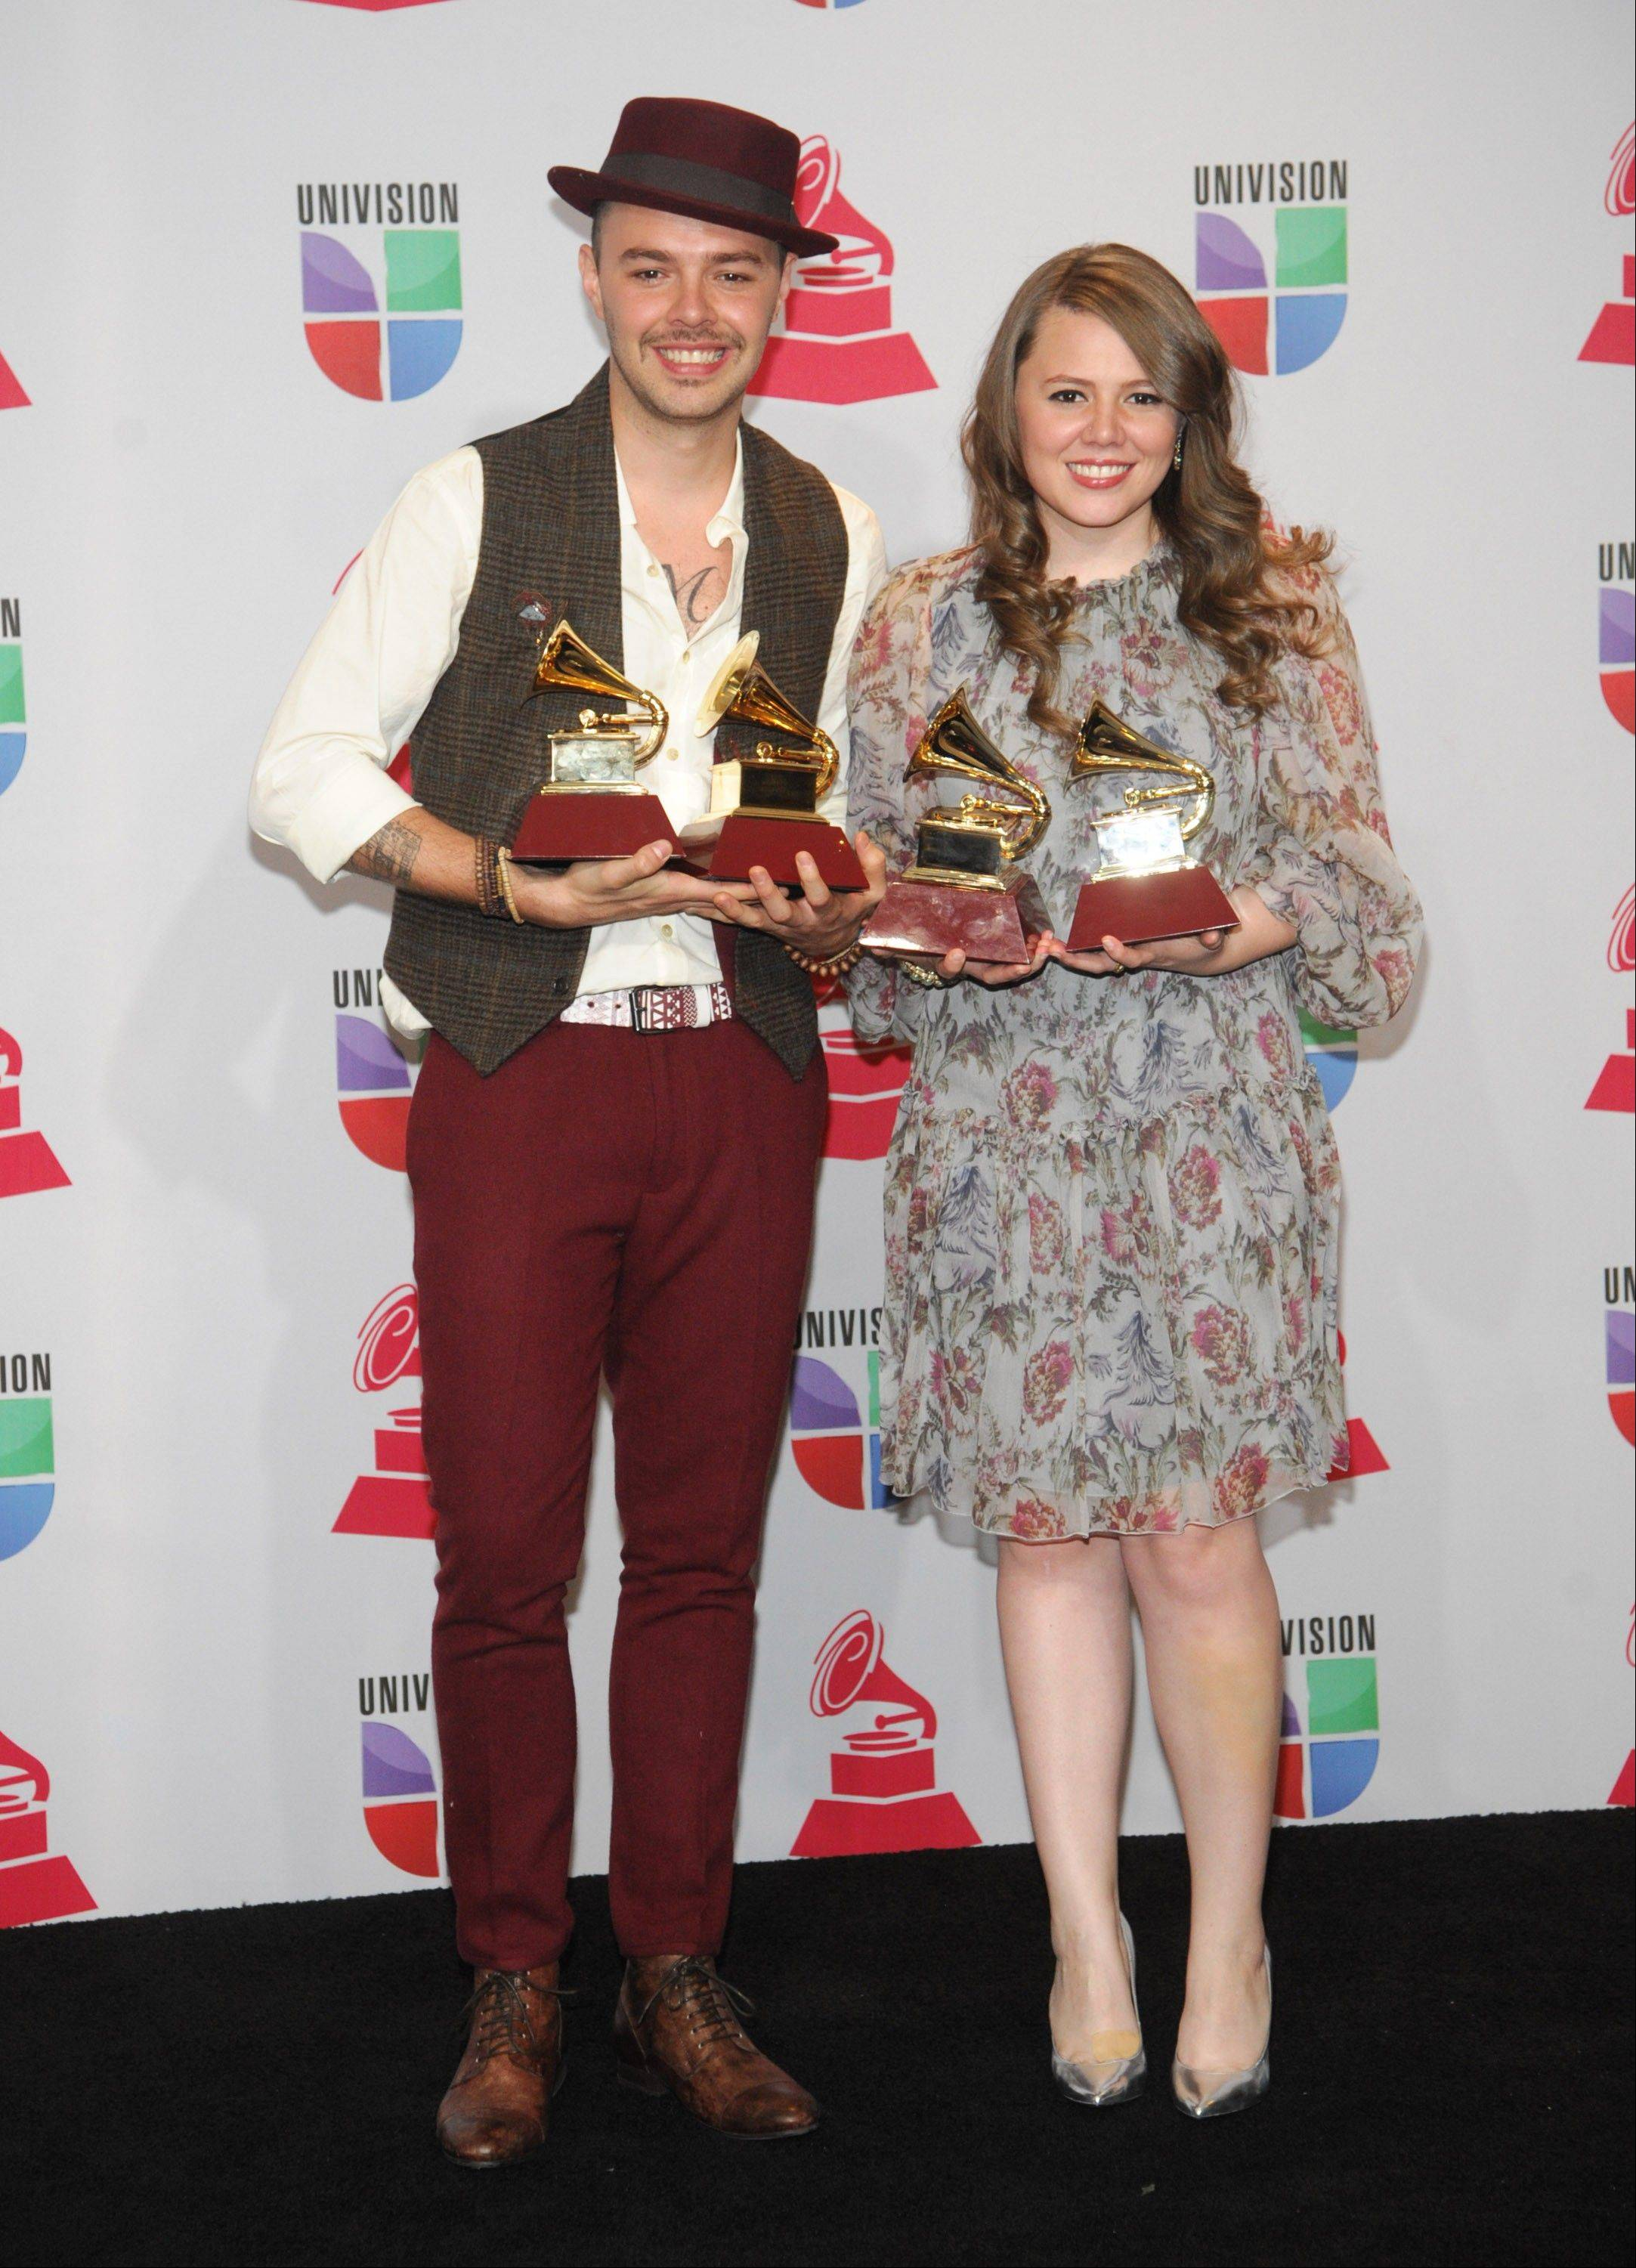 The Mexican brother-sister duo Jesse & Joy won four awards Thursday at the 13th Annual Latin Grammy Awards in Las Vegas.